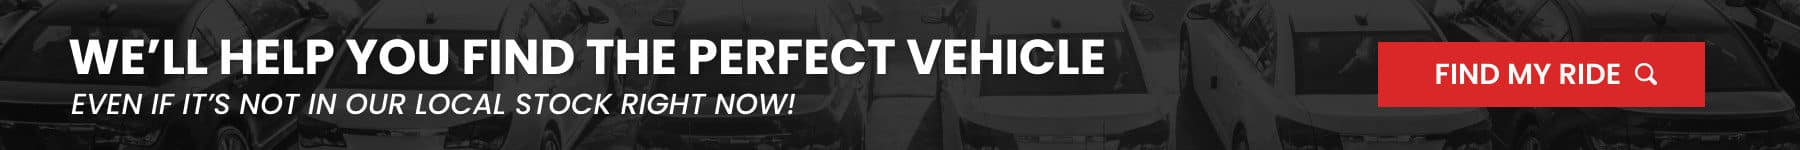 We will help you find the perfect vehicle